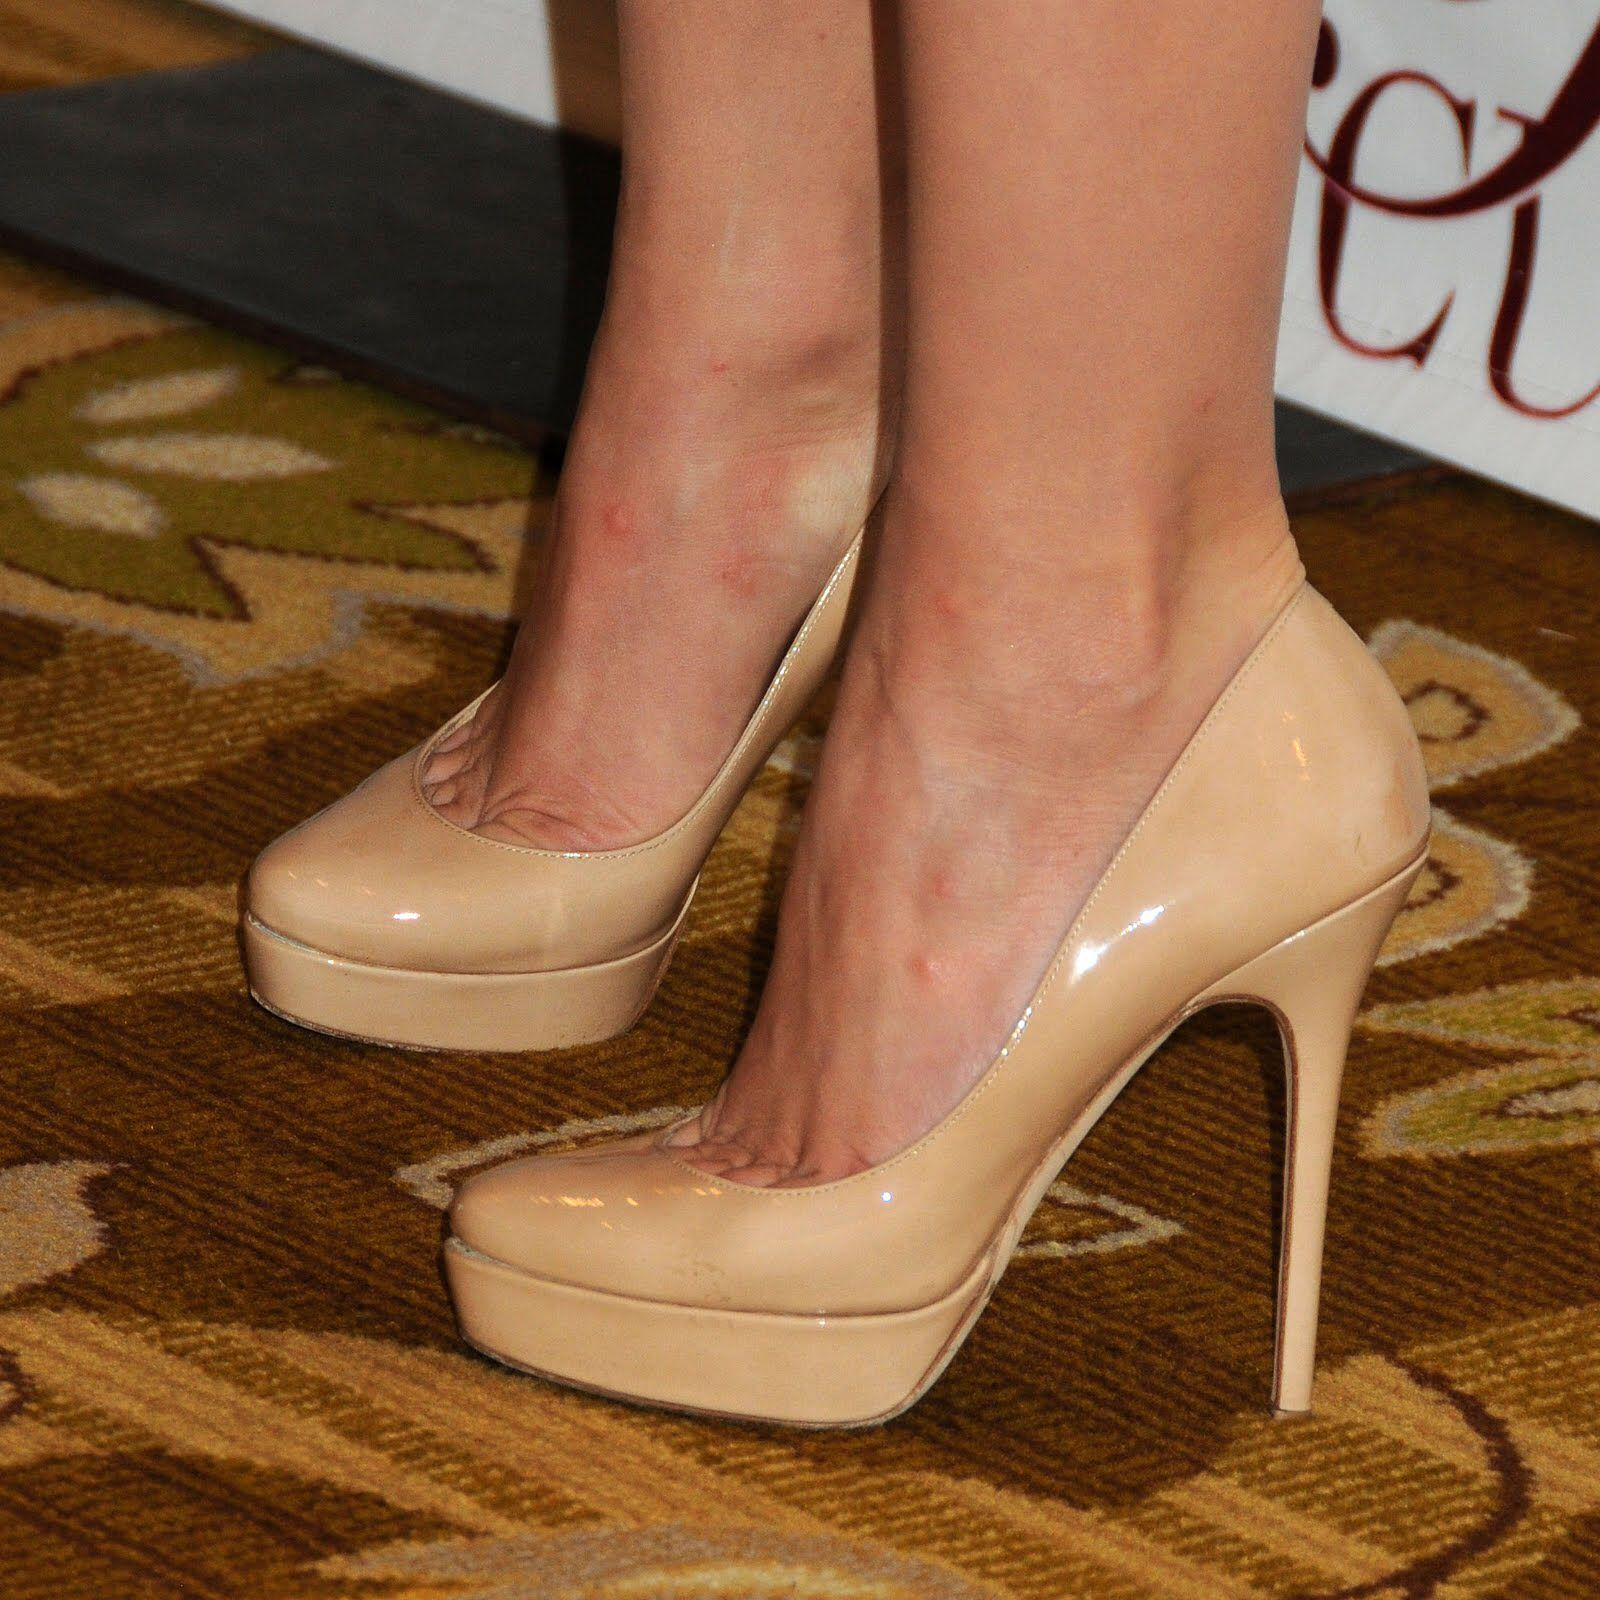 Julianne Hough's High Heels ...XoXo